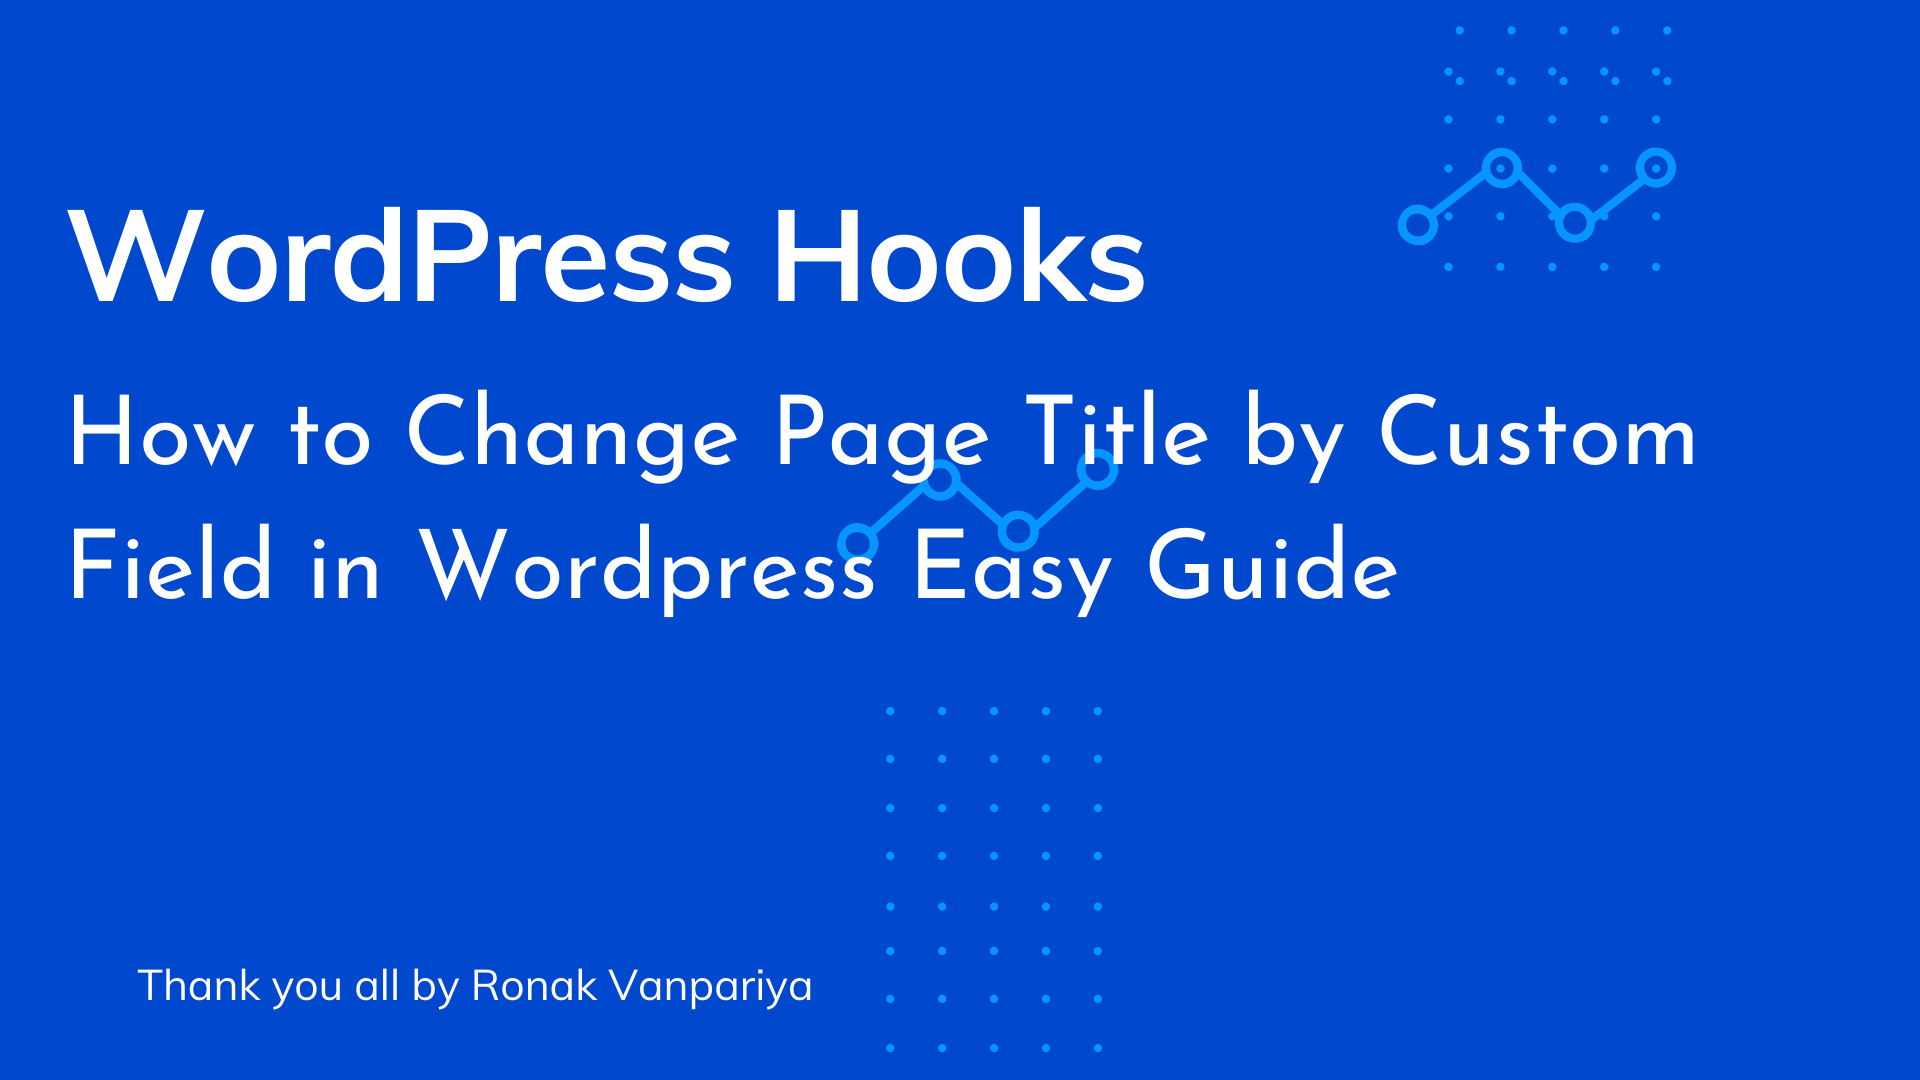 How to Change Page Title by Custom Field in Wordpress